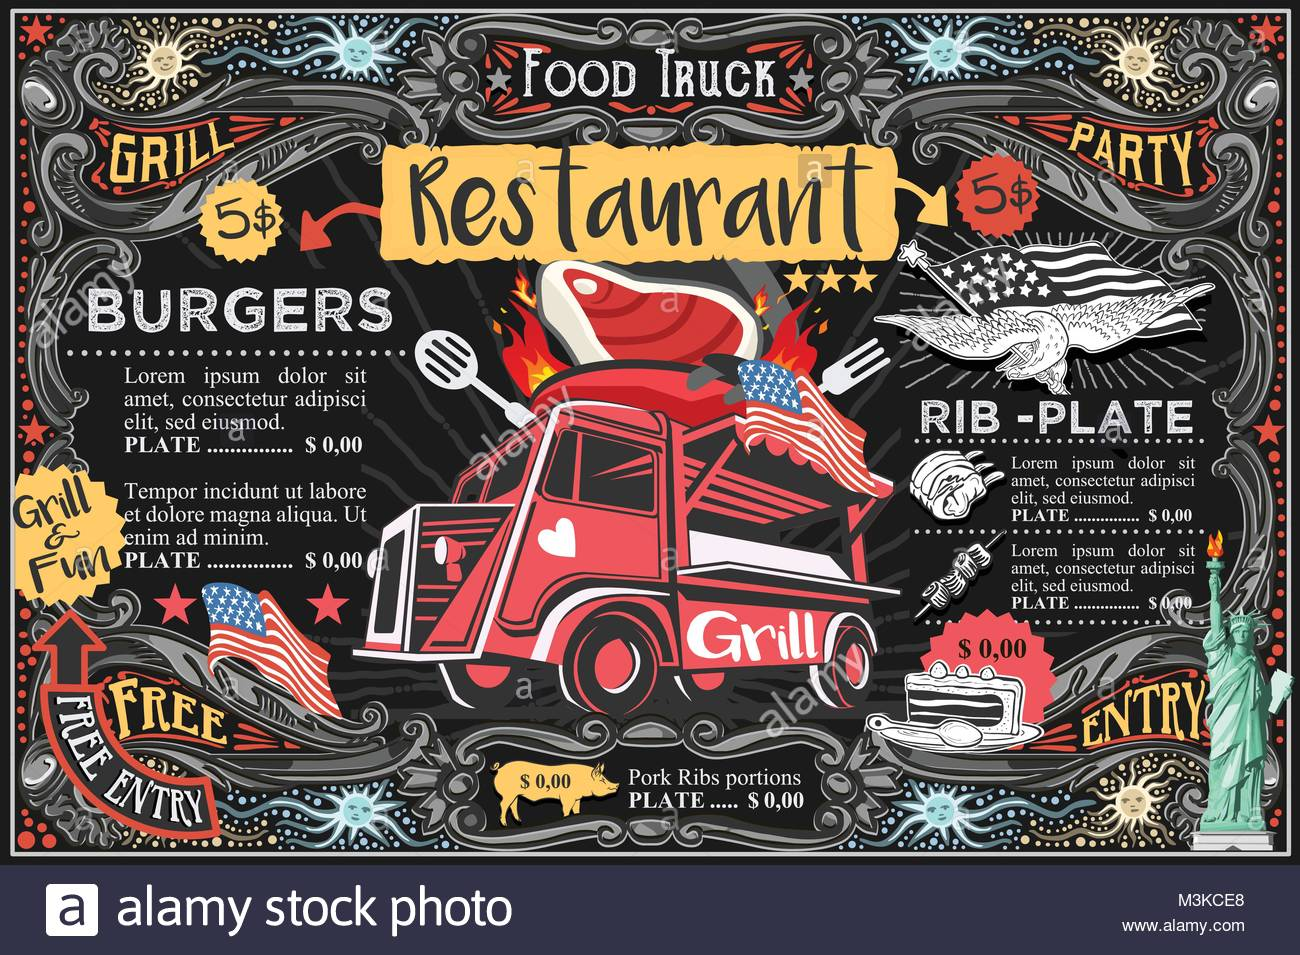 Food Truck Menu With Logo Hipster Advertise Layout Us Vector Stock